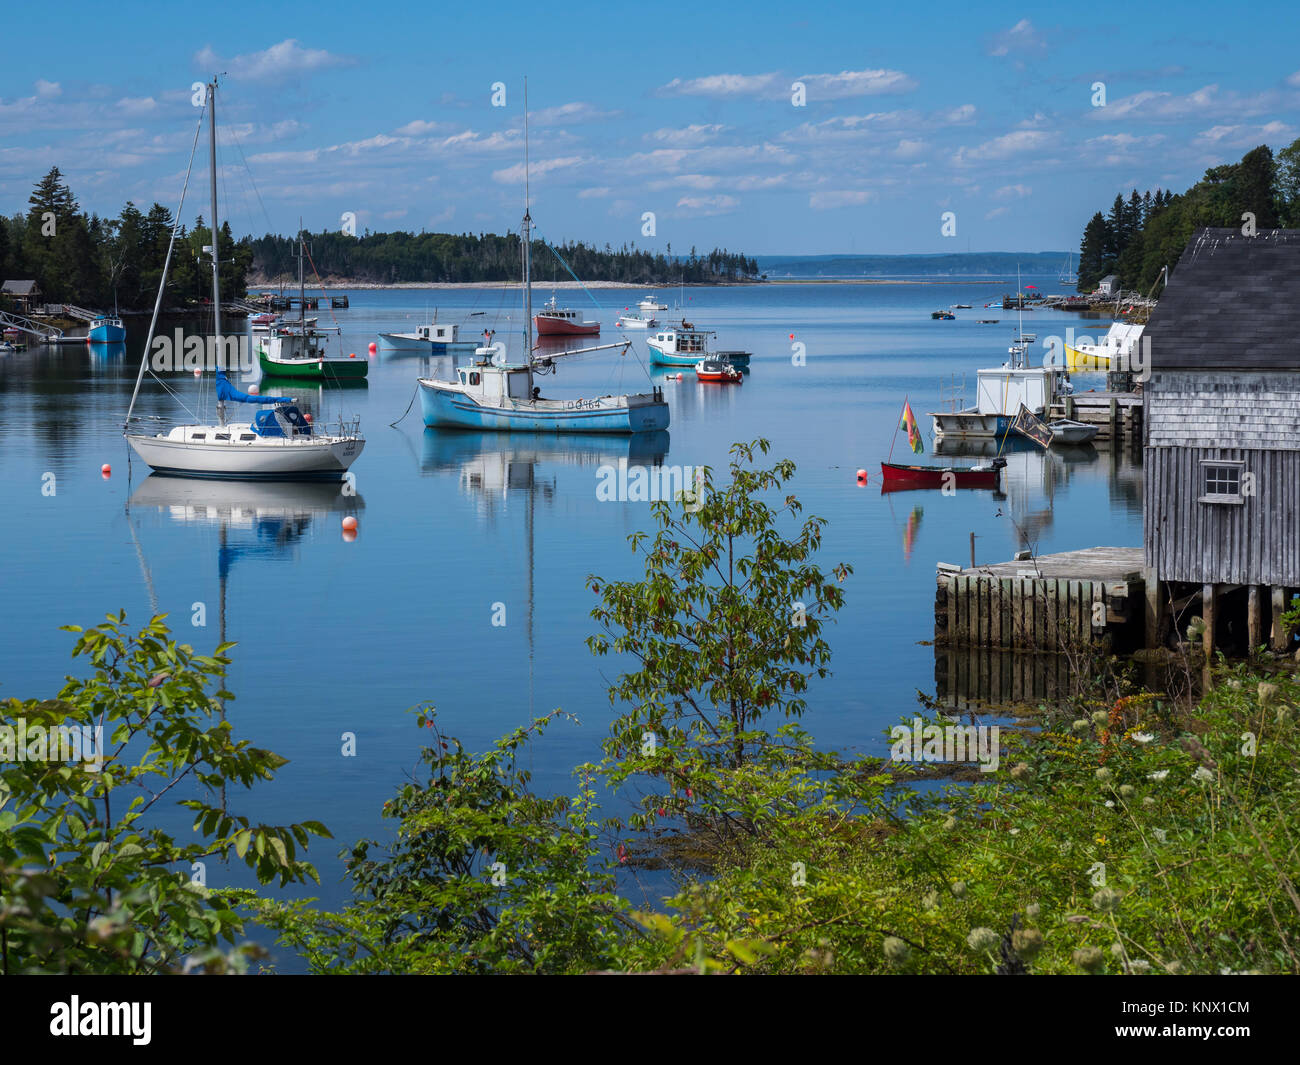 Saint Margaret's Bay near Hackett's Bay, Nova Scotia, Canada. - Stock Image